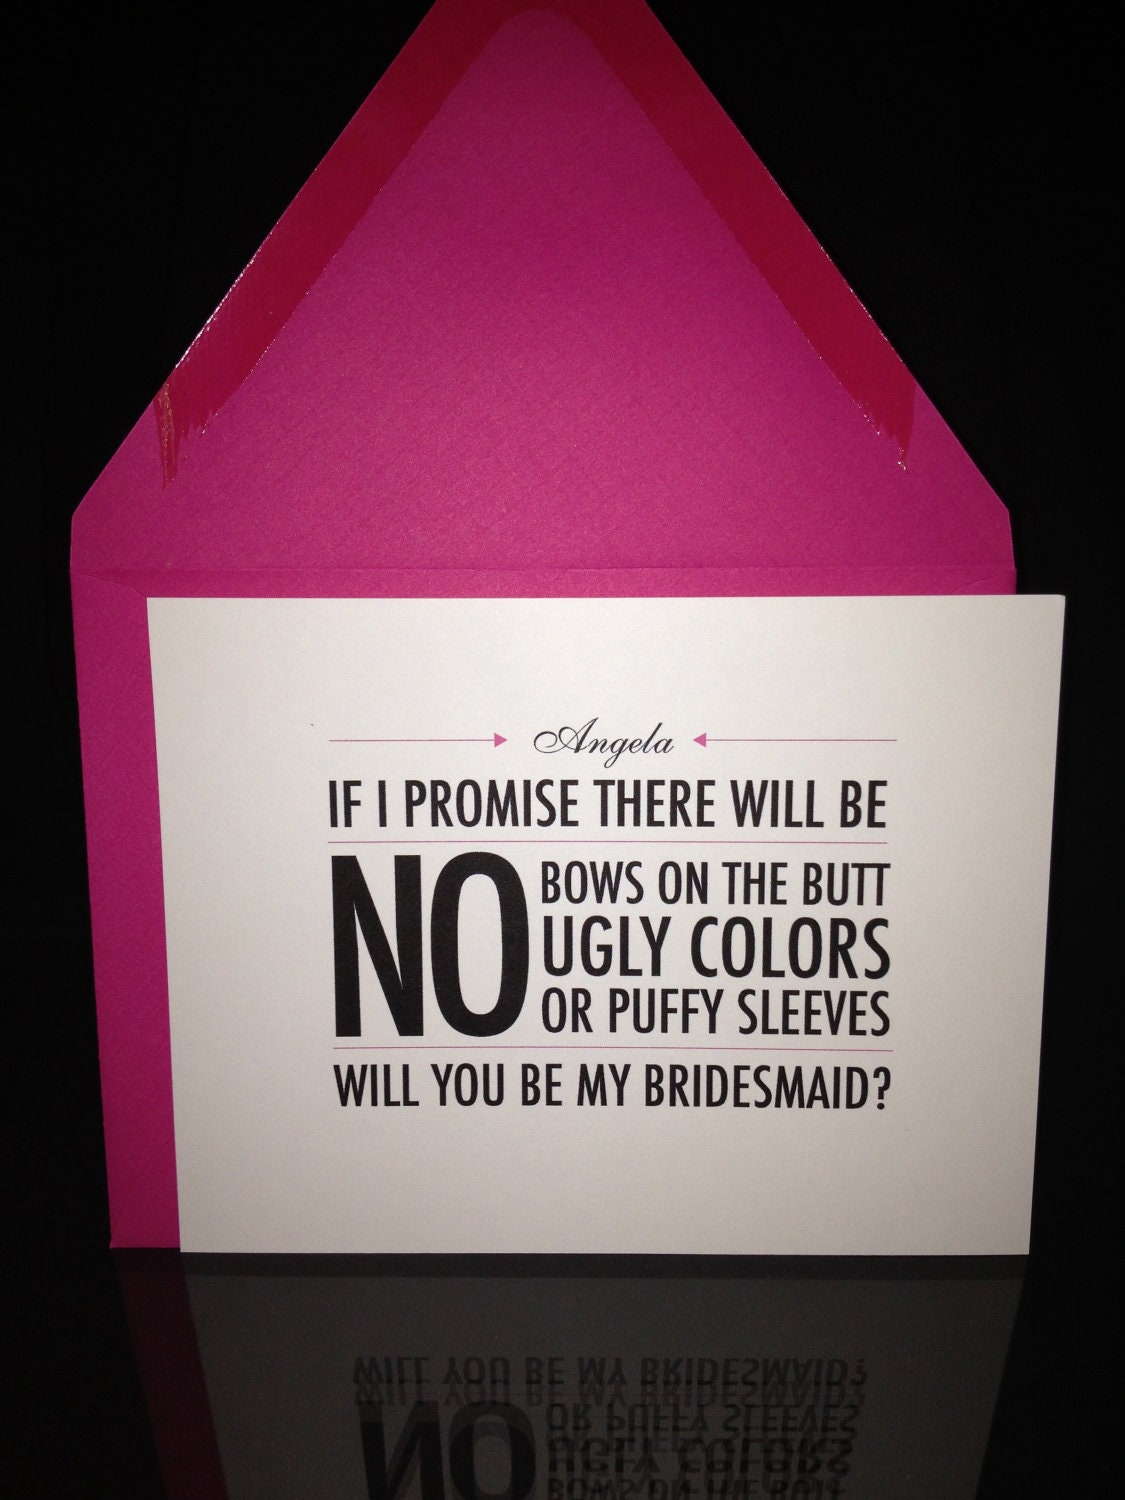 Personalized Will you be my Bridesmaid Cards (Bride's Promise) - Set of 5